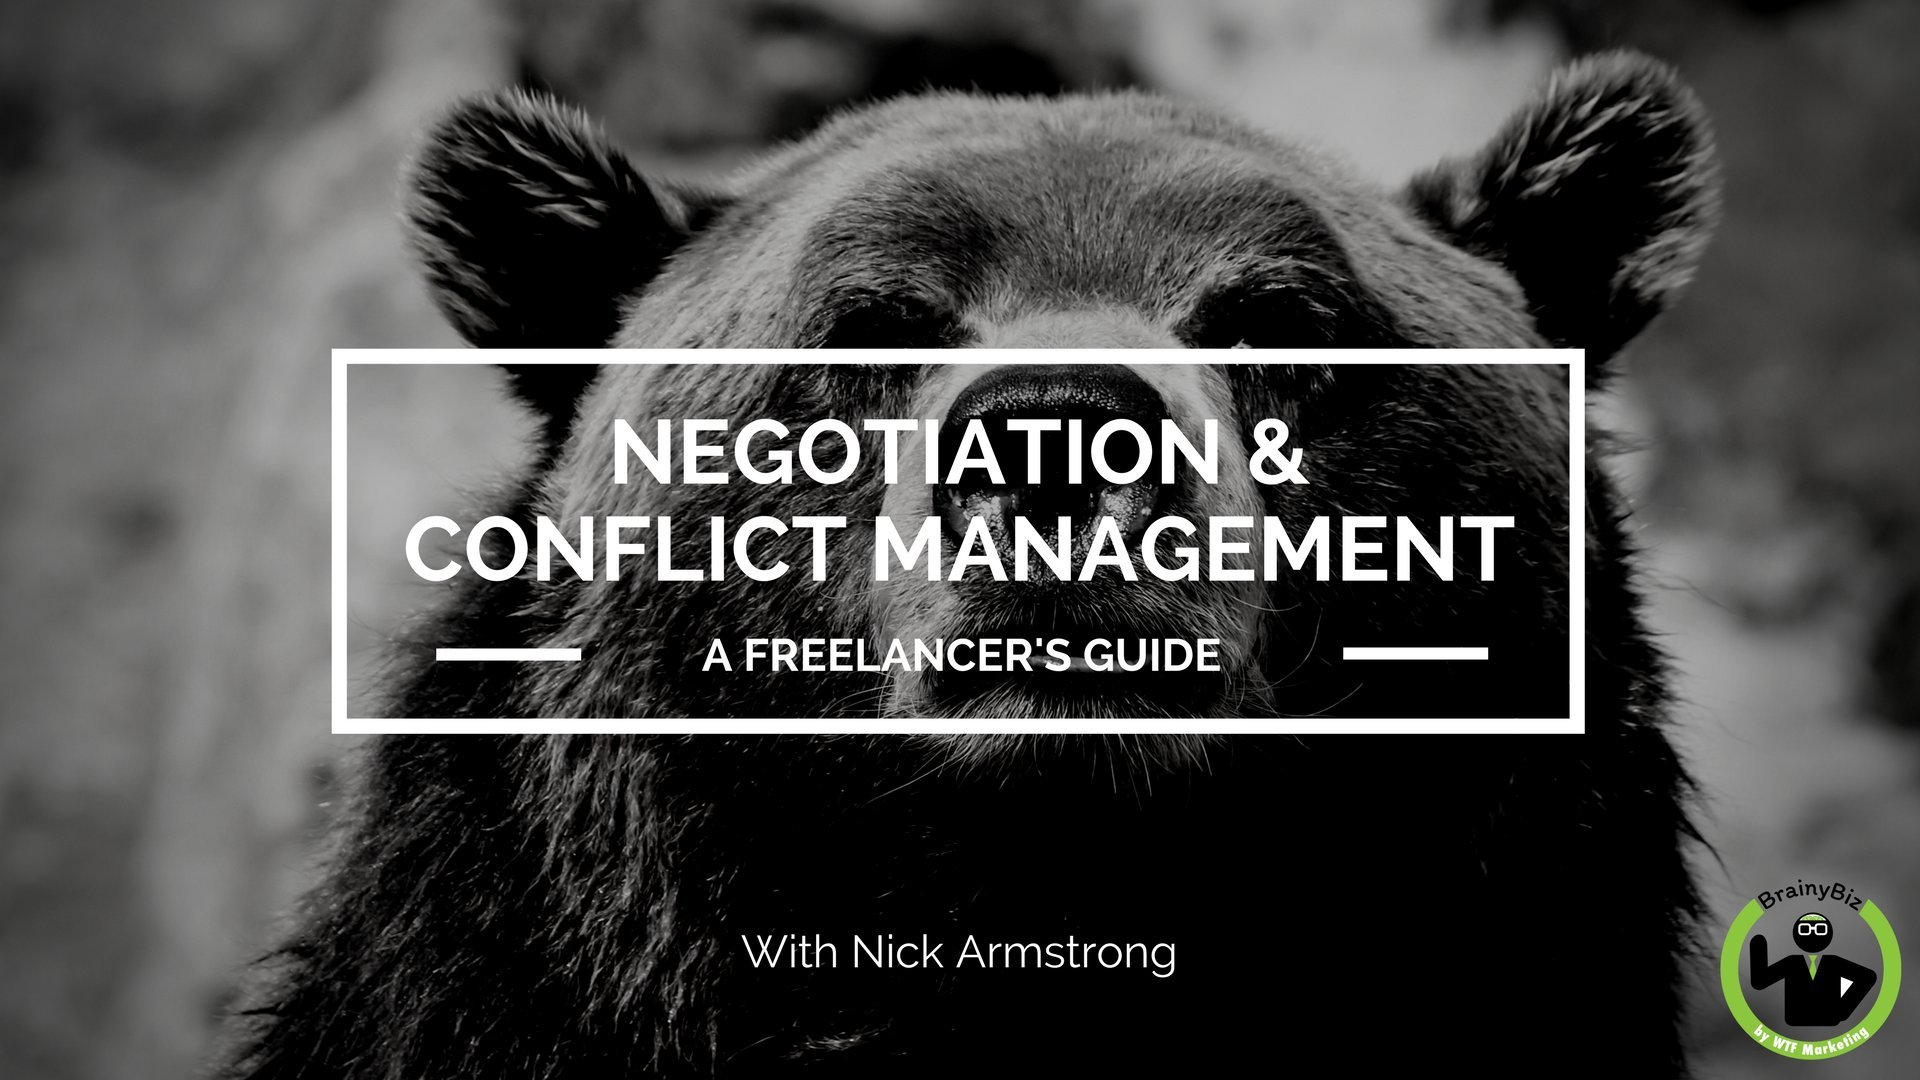 Negotiation and Conflict Management - A Freelancer's Guide